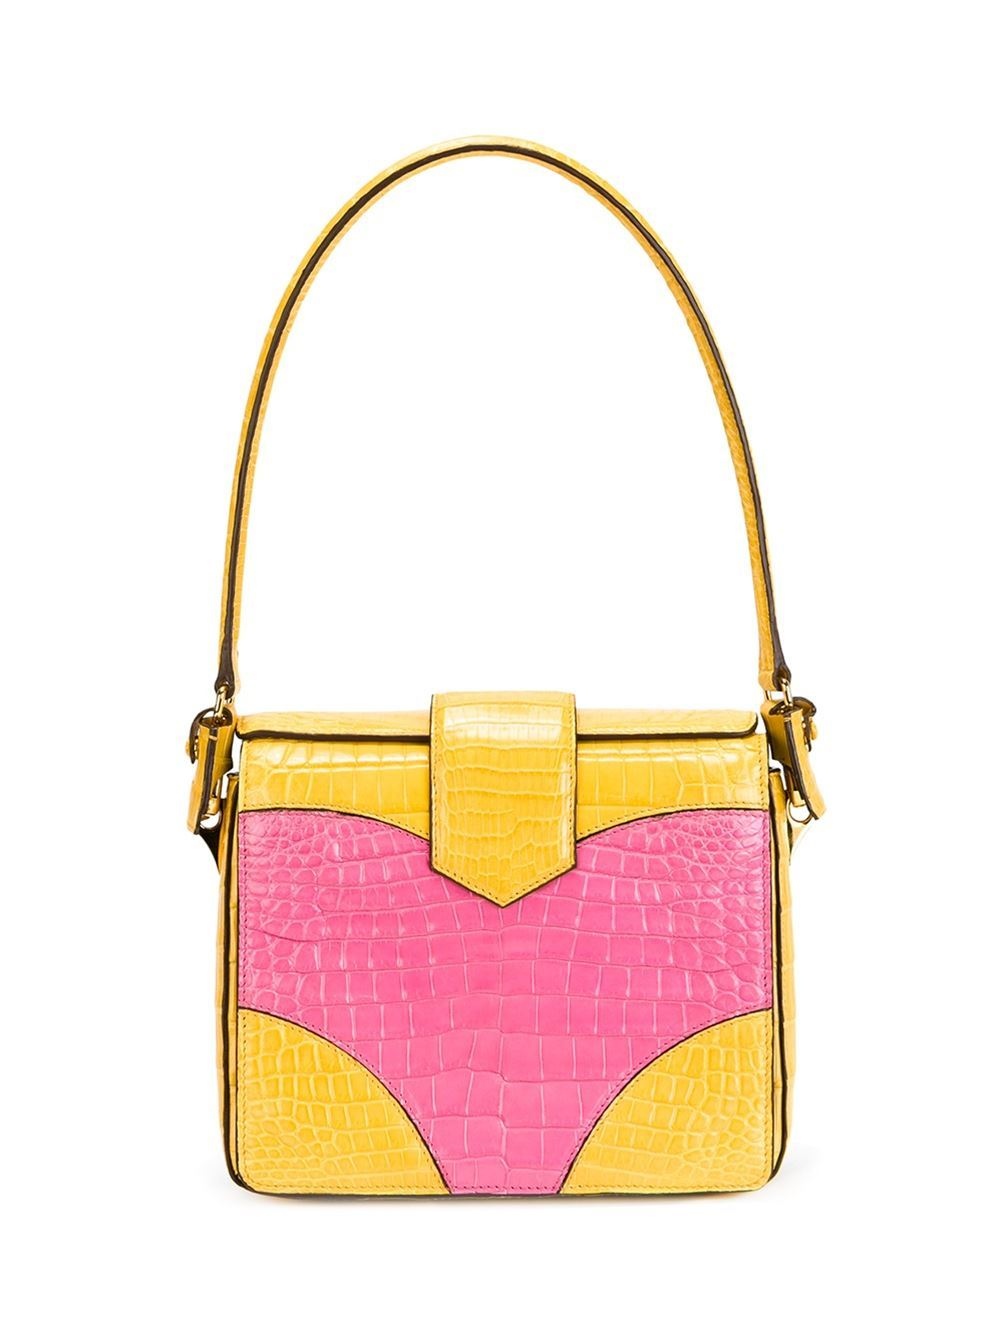 This yellow and pink crocodile leather colour block tote from Prada features foldover top with twist-lock closure, gold-tone hardware, a panelled colour block design, an internal zipped pocket, multiple interior compartments and an internal logo